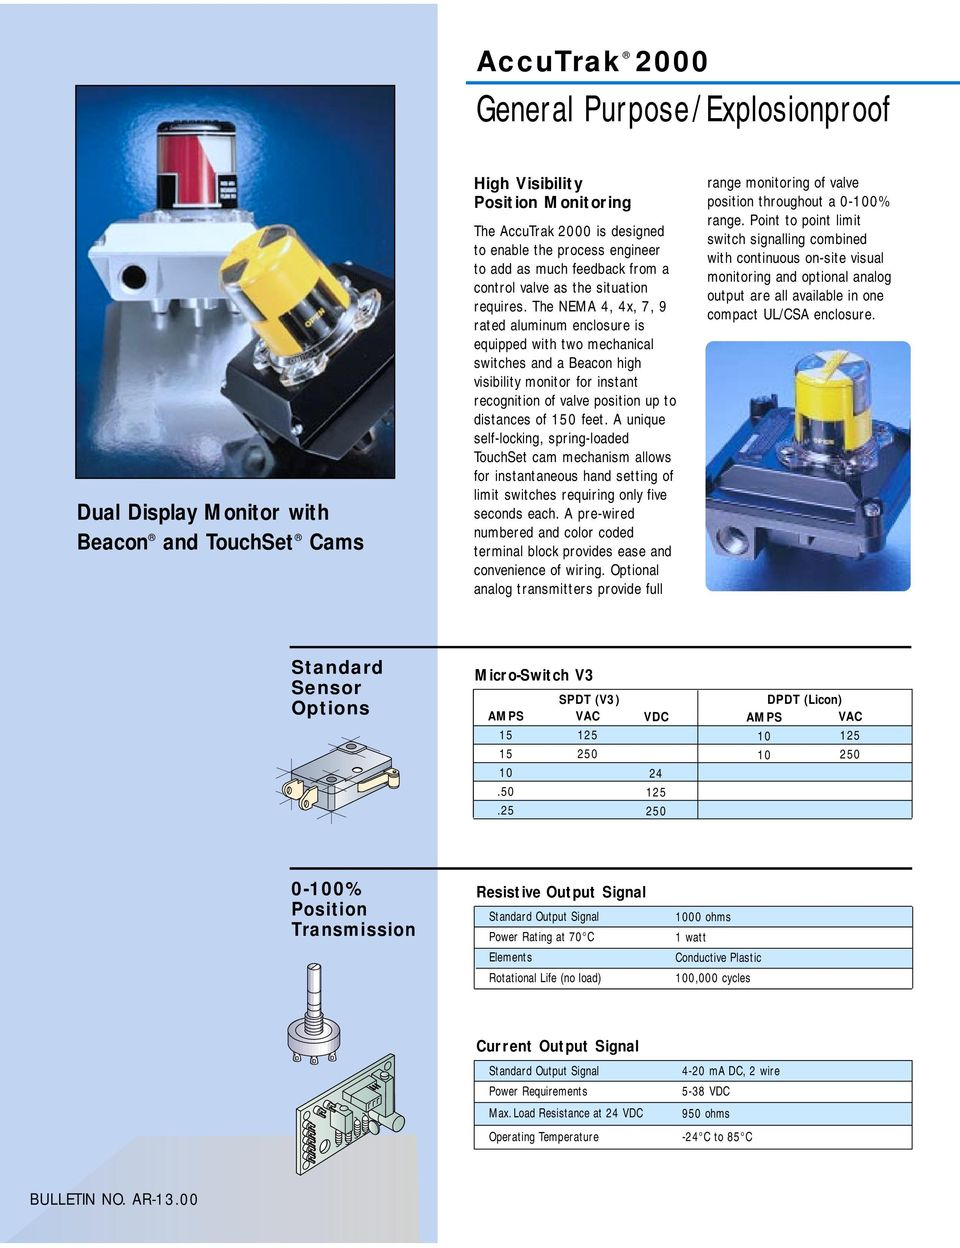 Accutrak Rotary Valve Position Monitors Wiring Mechanical Switches The Nema 4 4x 7 9 Rated Aluminum Enclosure Is Equipped With Two